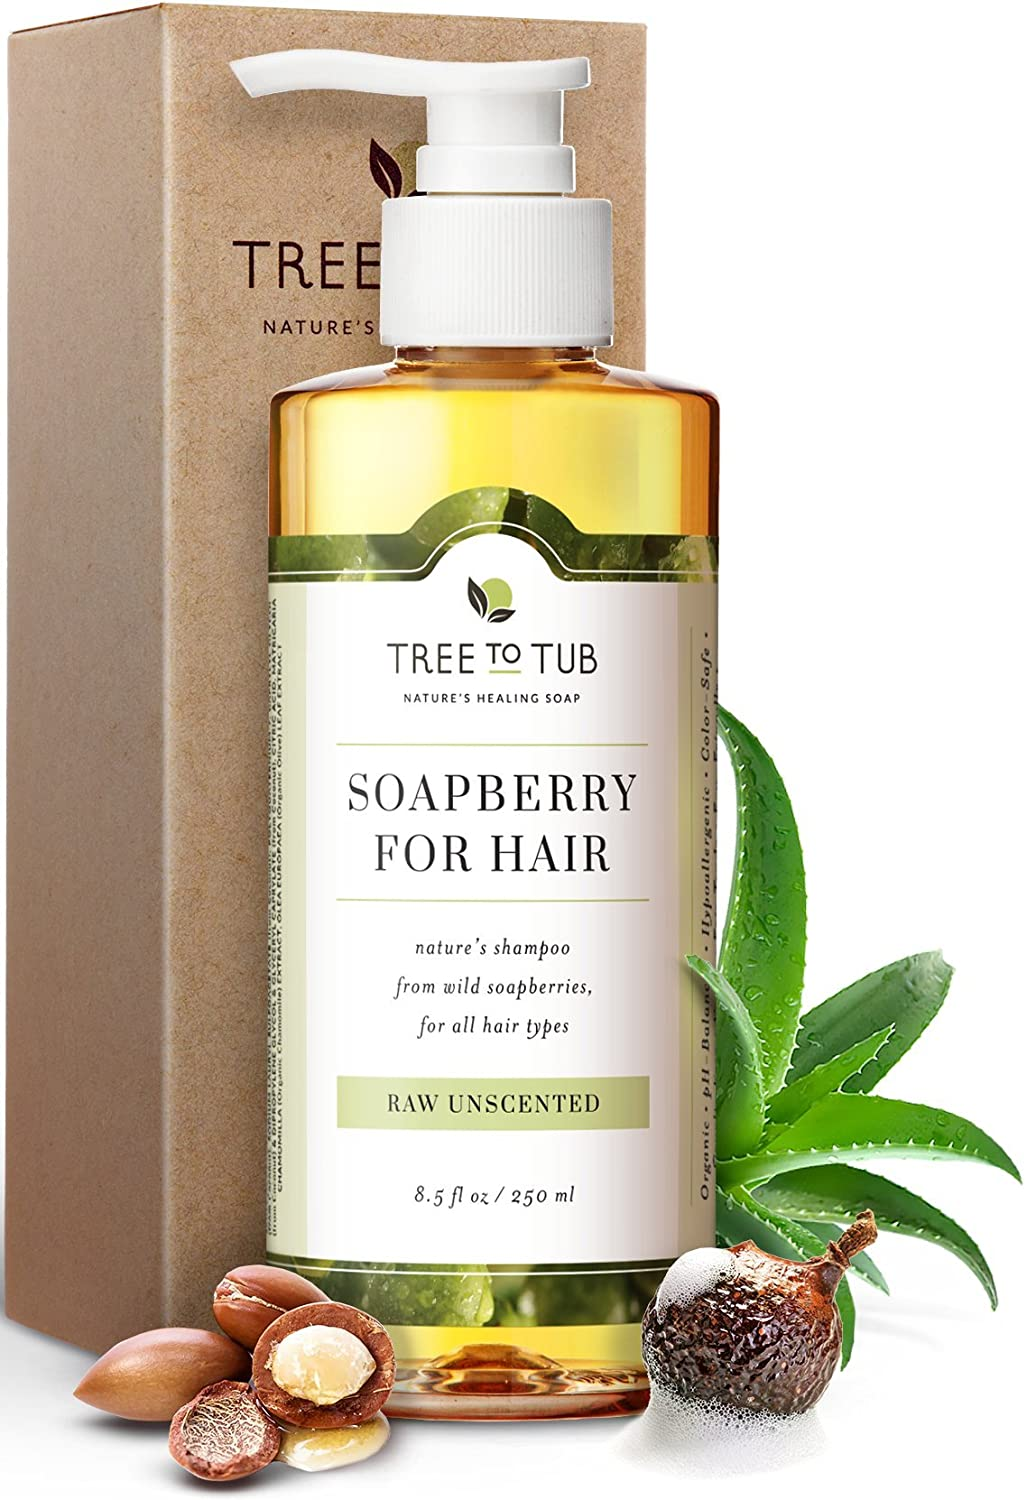 Ultra Gentle Shampoo for Very Sensitive Skin by Tree To Tub | pH 5.5 Balanced & Fragrance Free Shampoo for Damaged Scalp, Psoriasis, with Organic Moroccan Oil, Wild Soapberries 8.5 oz